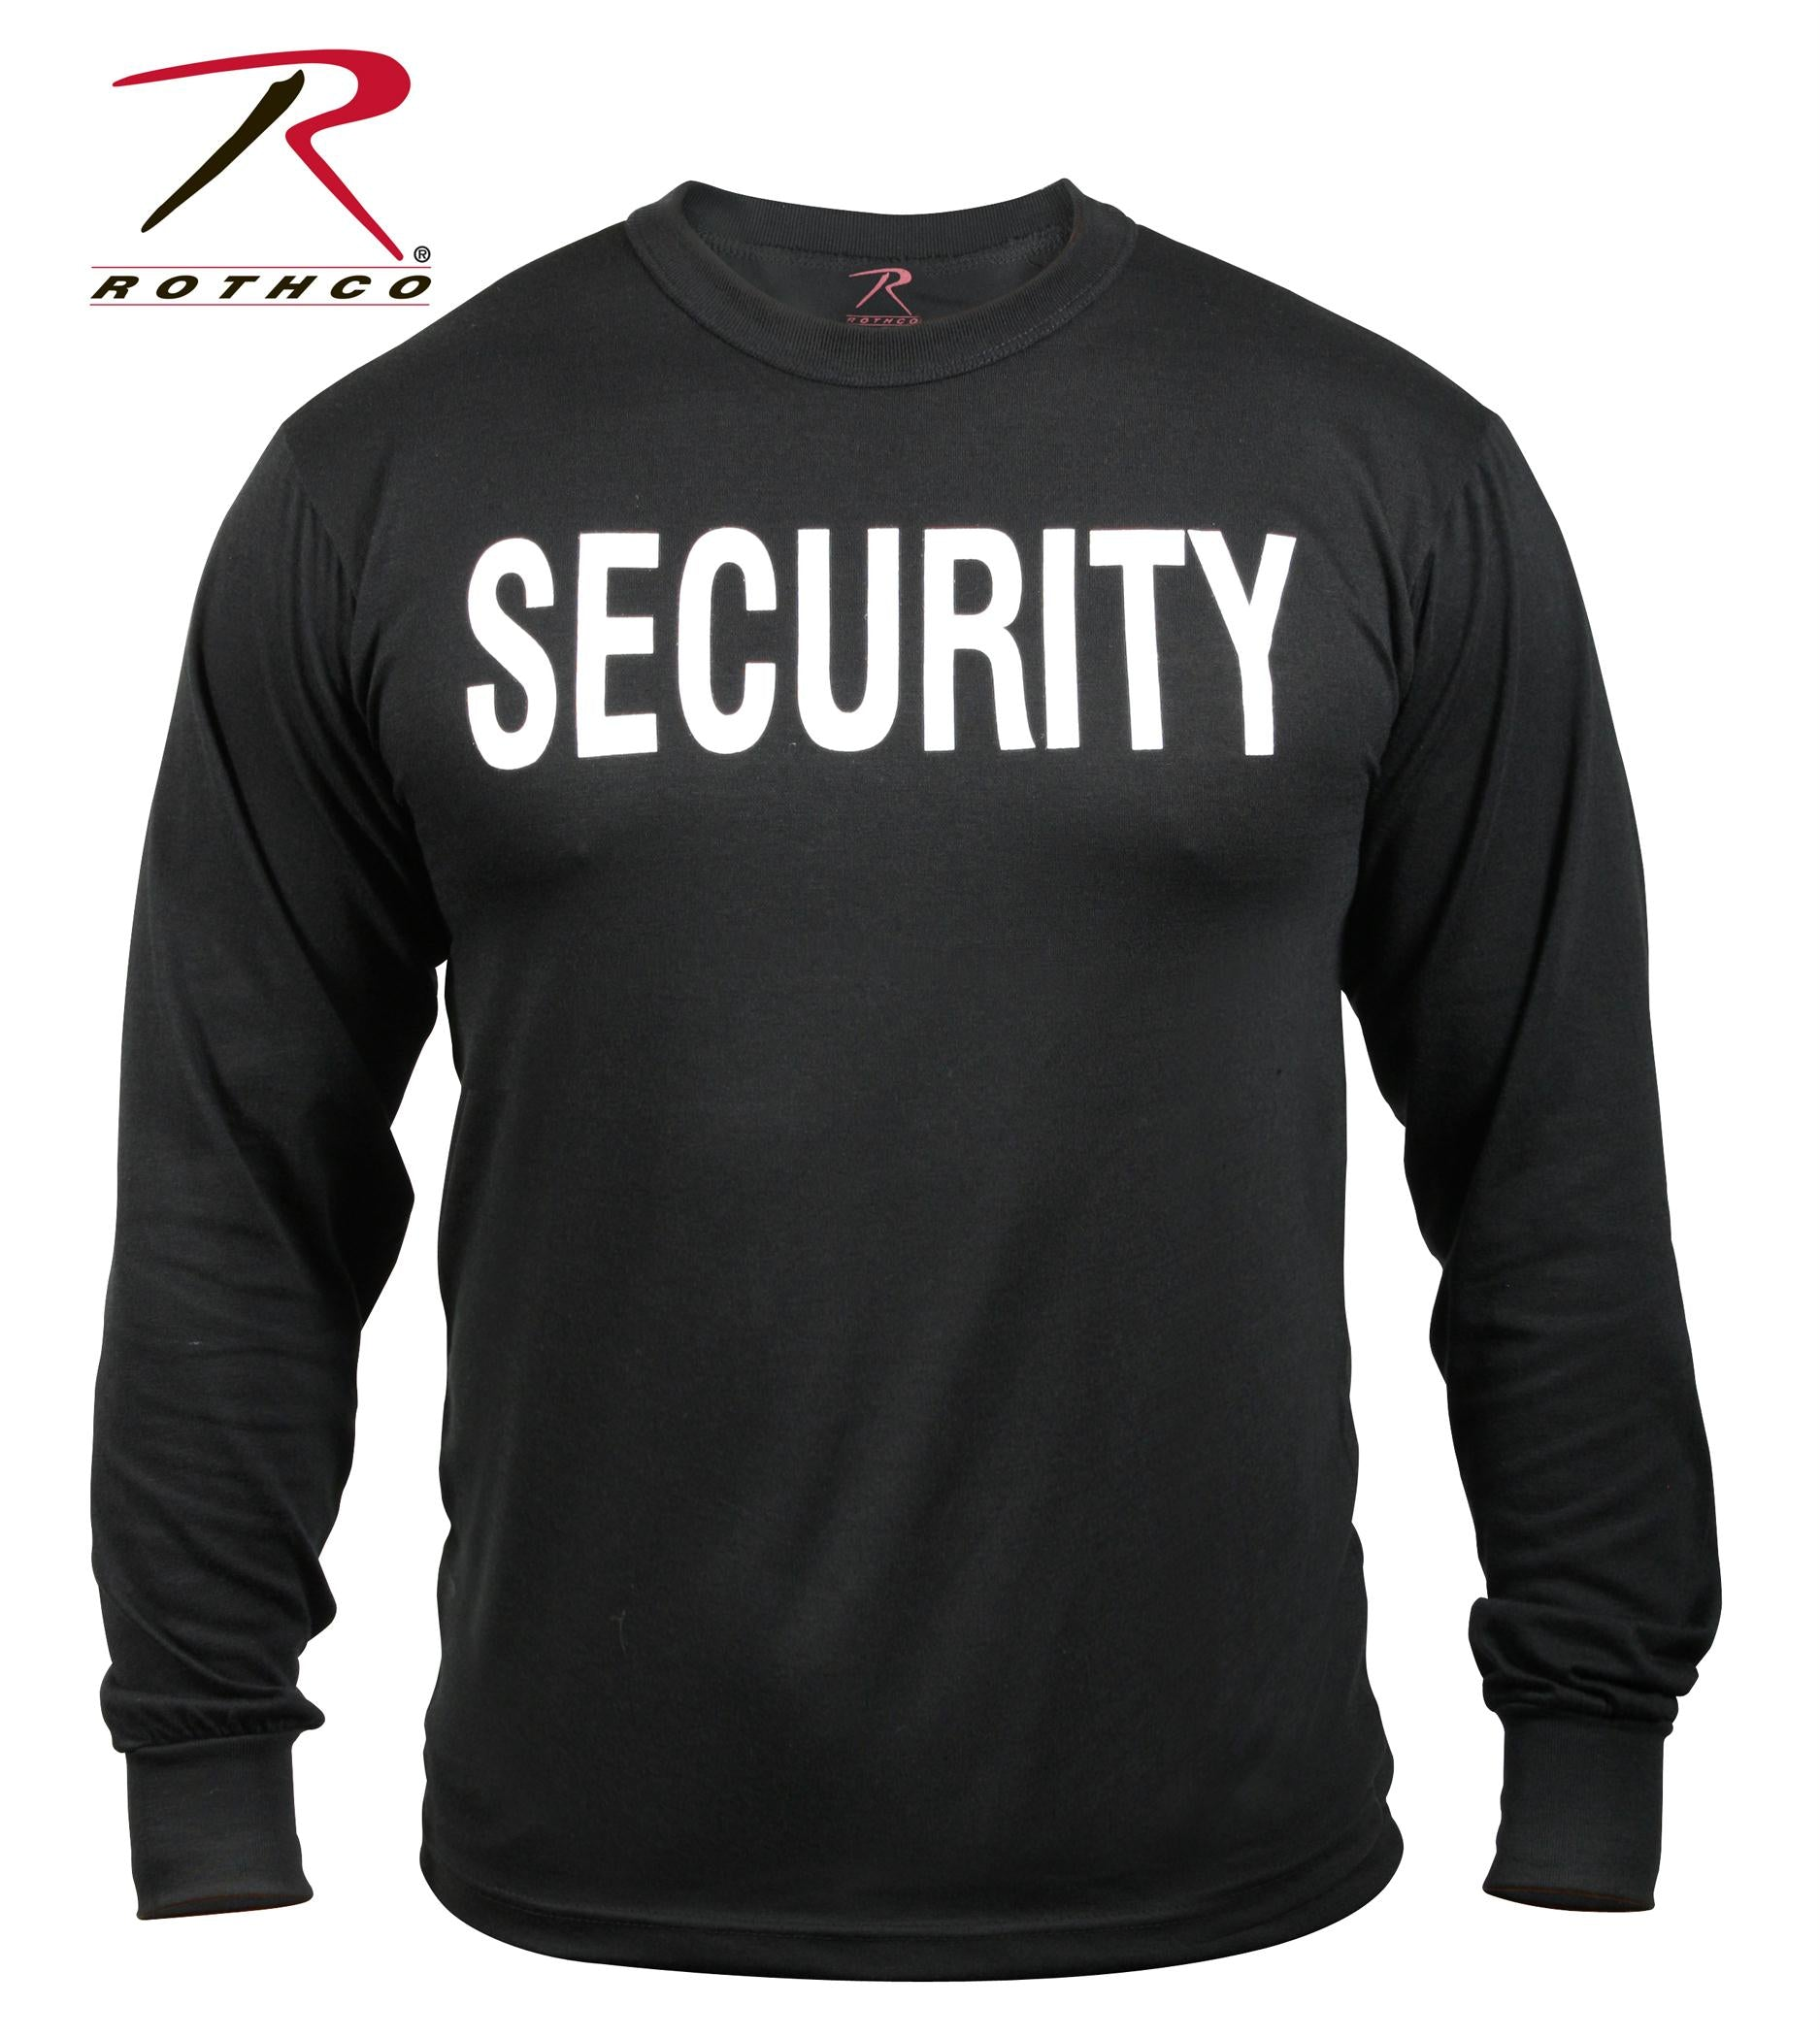 Rothco 2-Sided Security Long Sleeve T-Shirt - 3XL